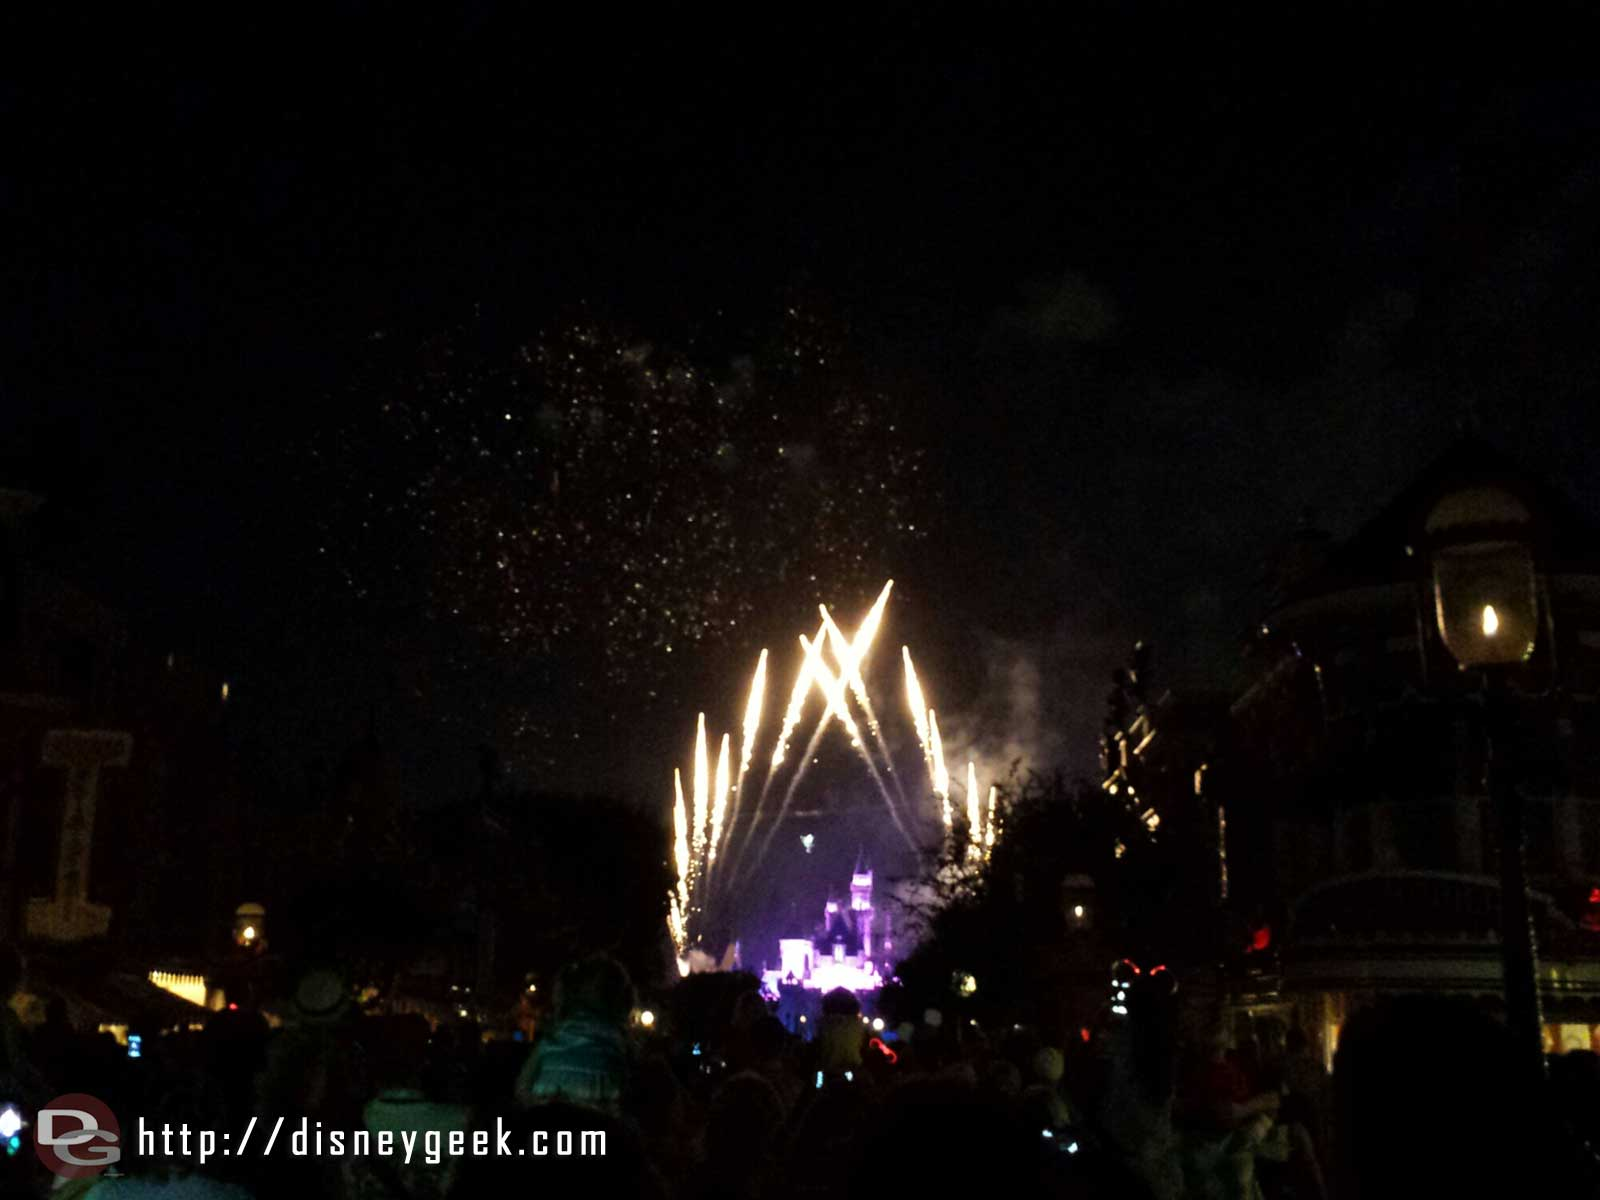 On Main Street USA for Remember Dreams Come True, Tinkerbell flew tonight